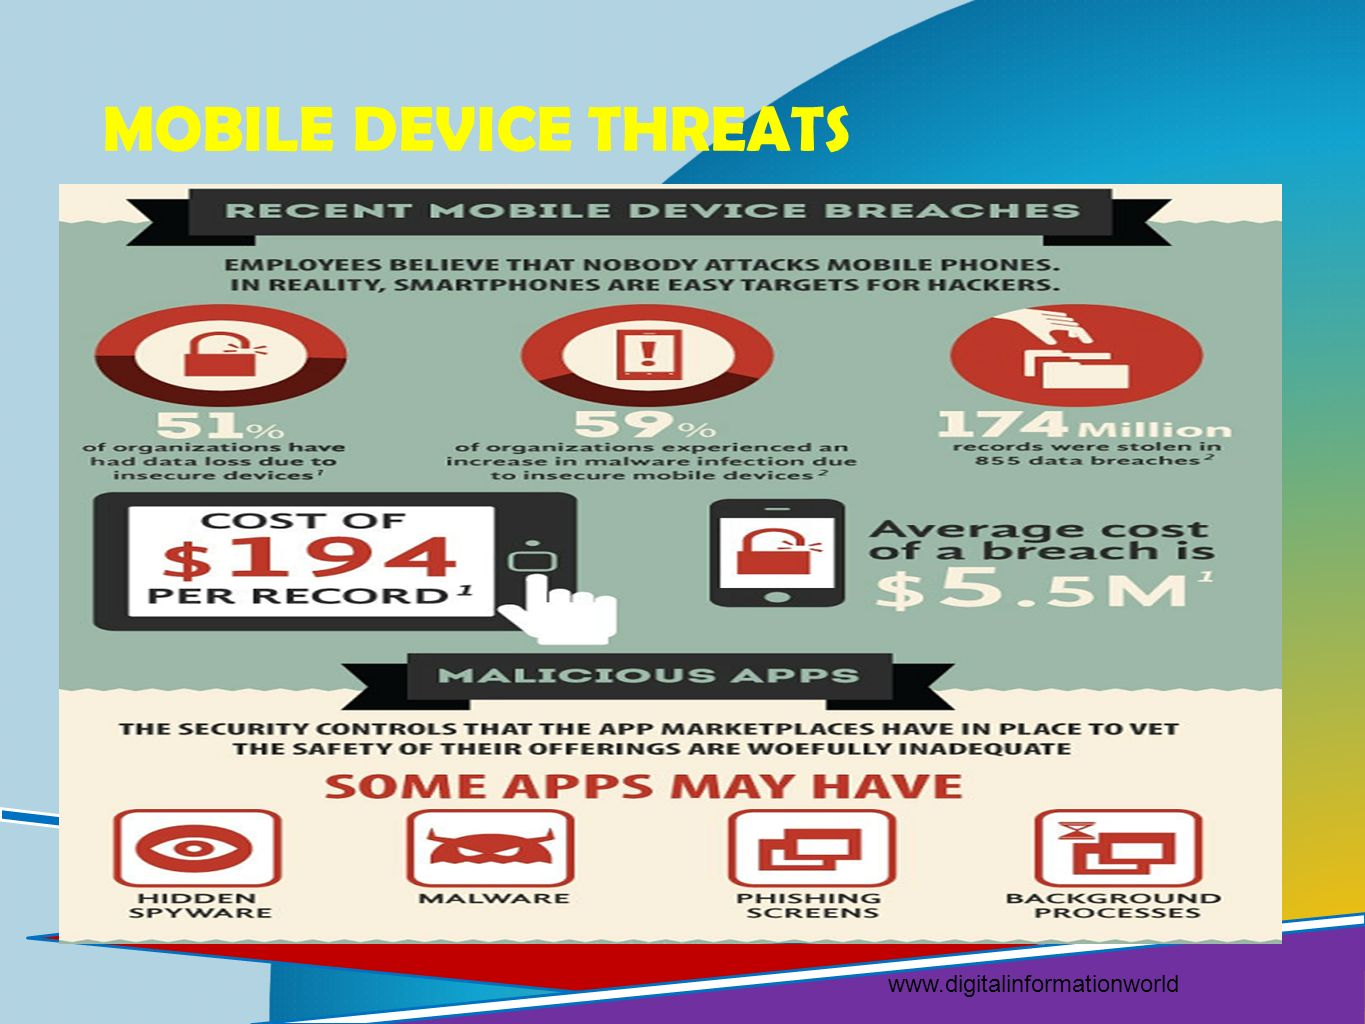 Mobile device threats   Tips: